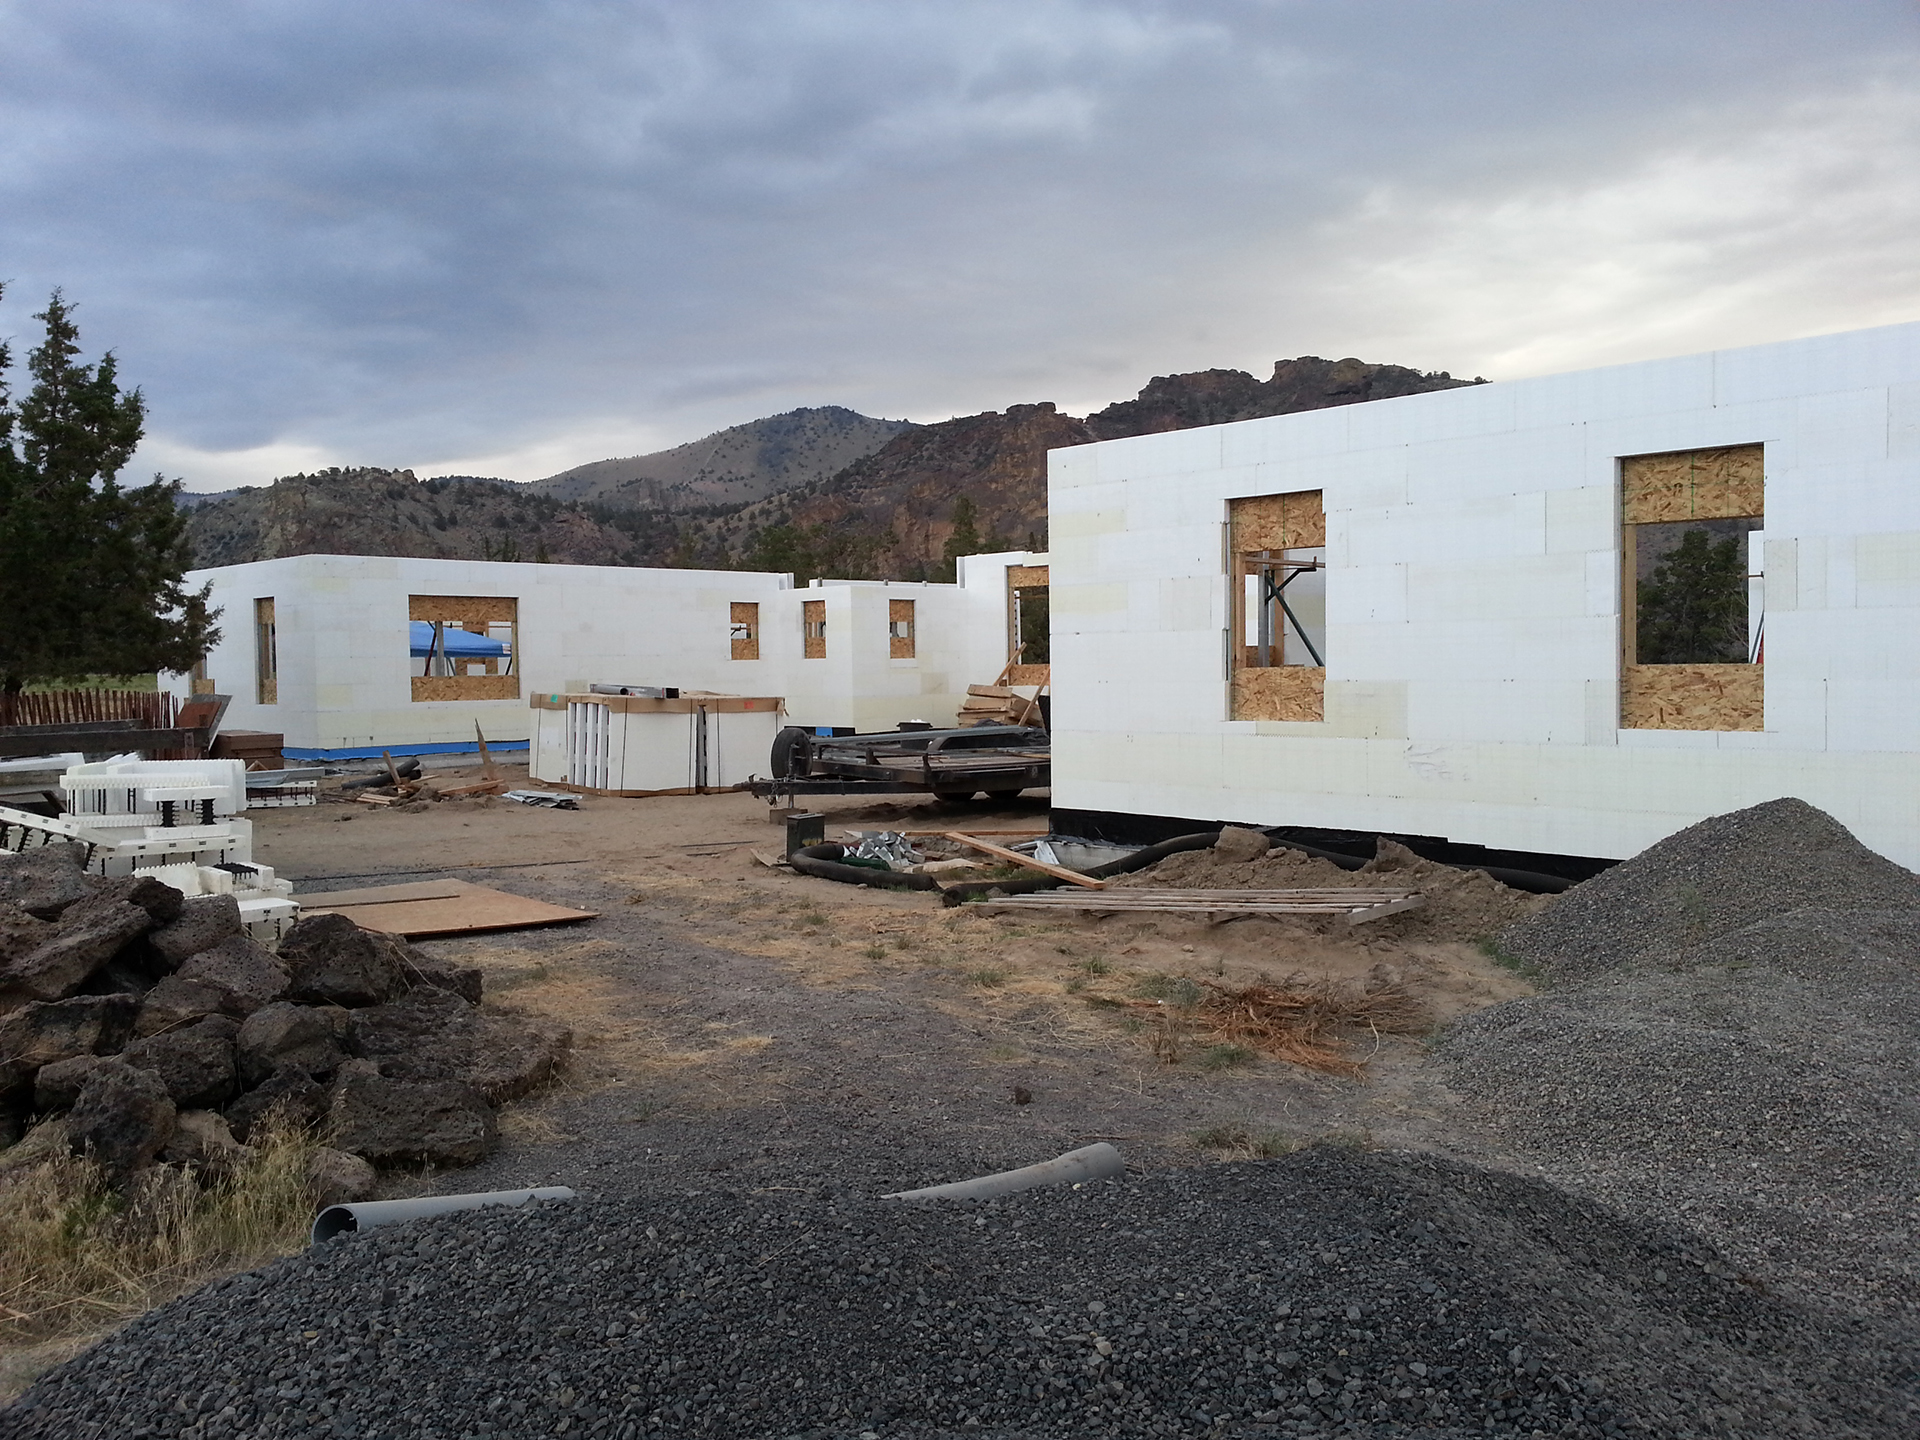 Icf House Project In Central Oregon Laylo 3d